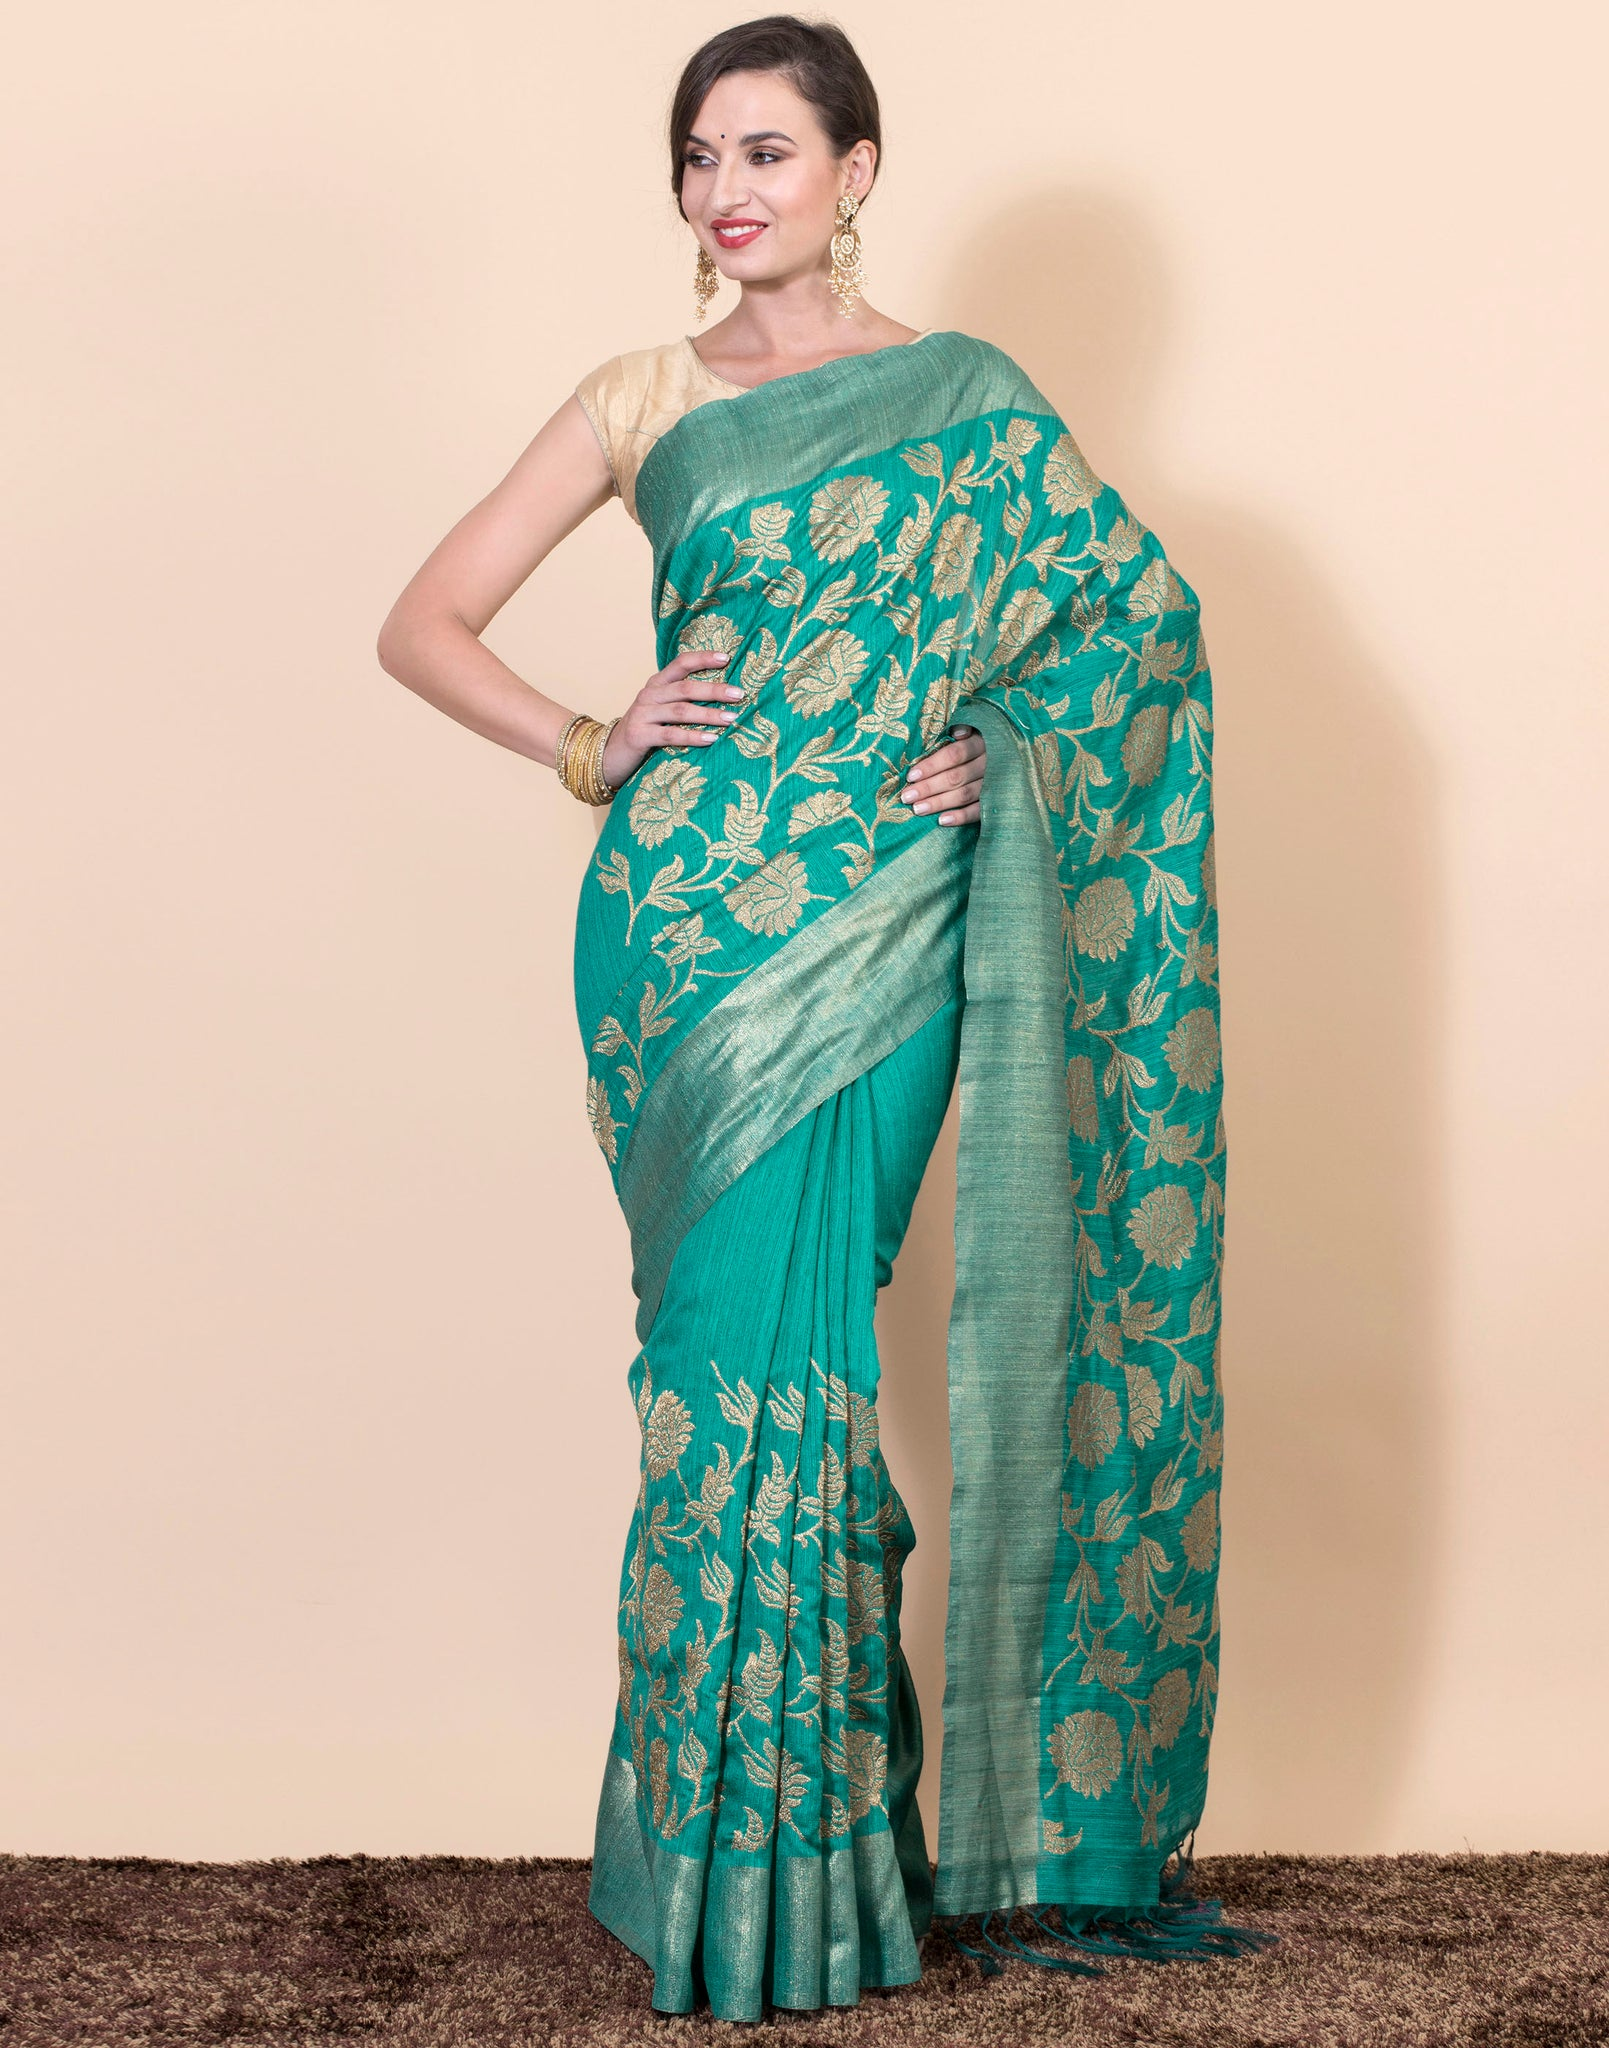 Golden woven zari work saree